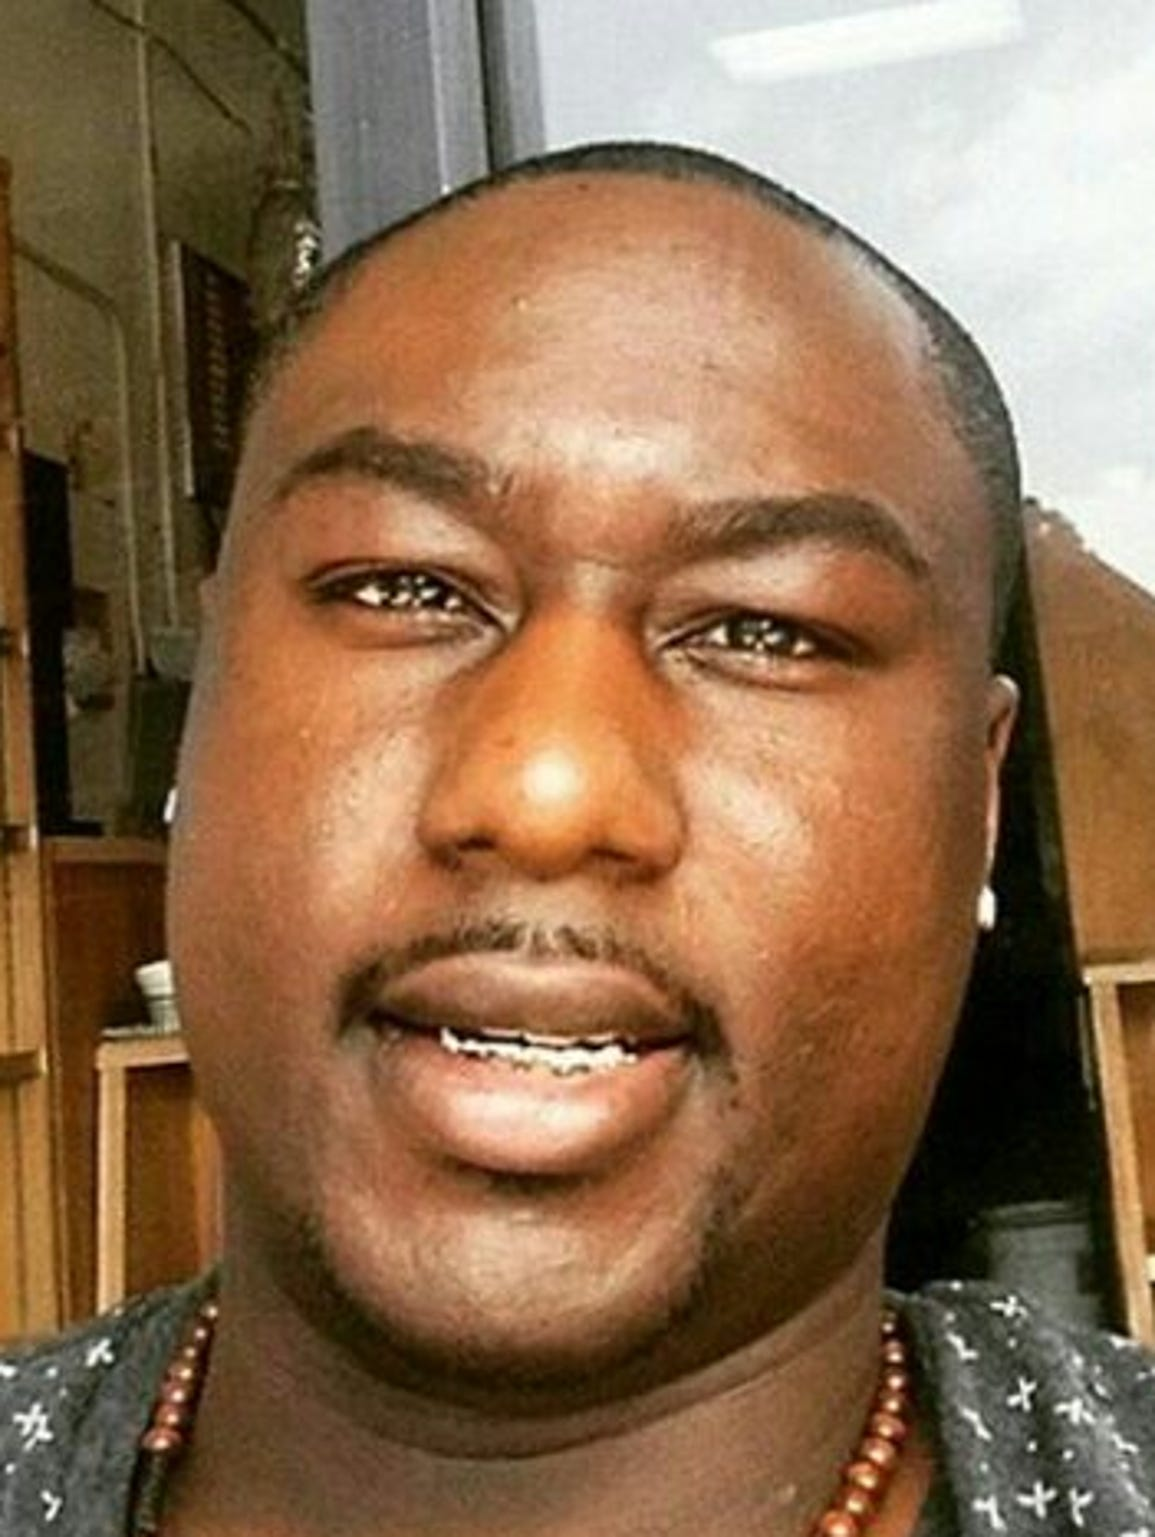 Aaron Austin, 29, of Oxnard was fatally shot on May